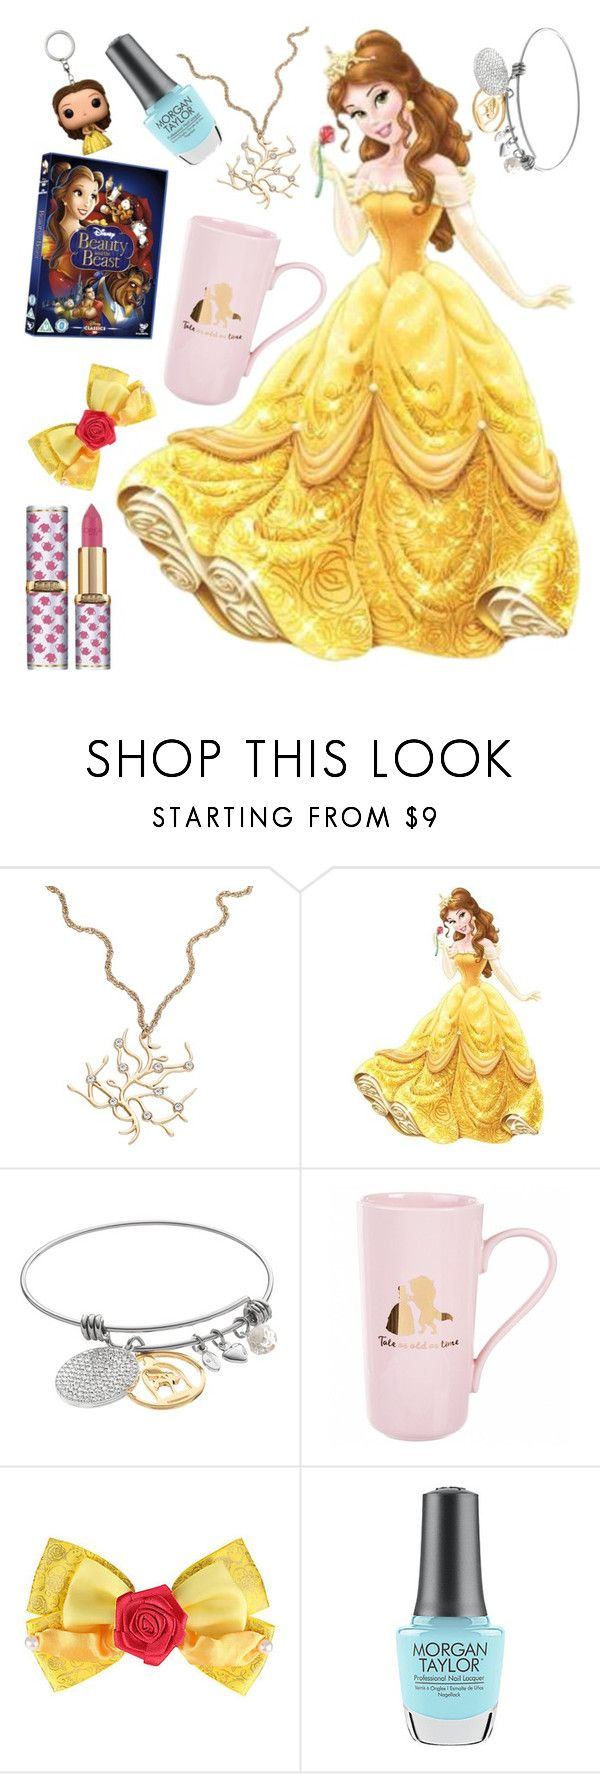 """Belle"" by madelinepieper ❤ liked on Polyvore featuring York Wallcoverings, Disney, L'Oréal Paris and Morgan Taylor"